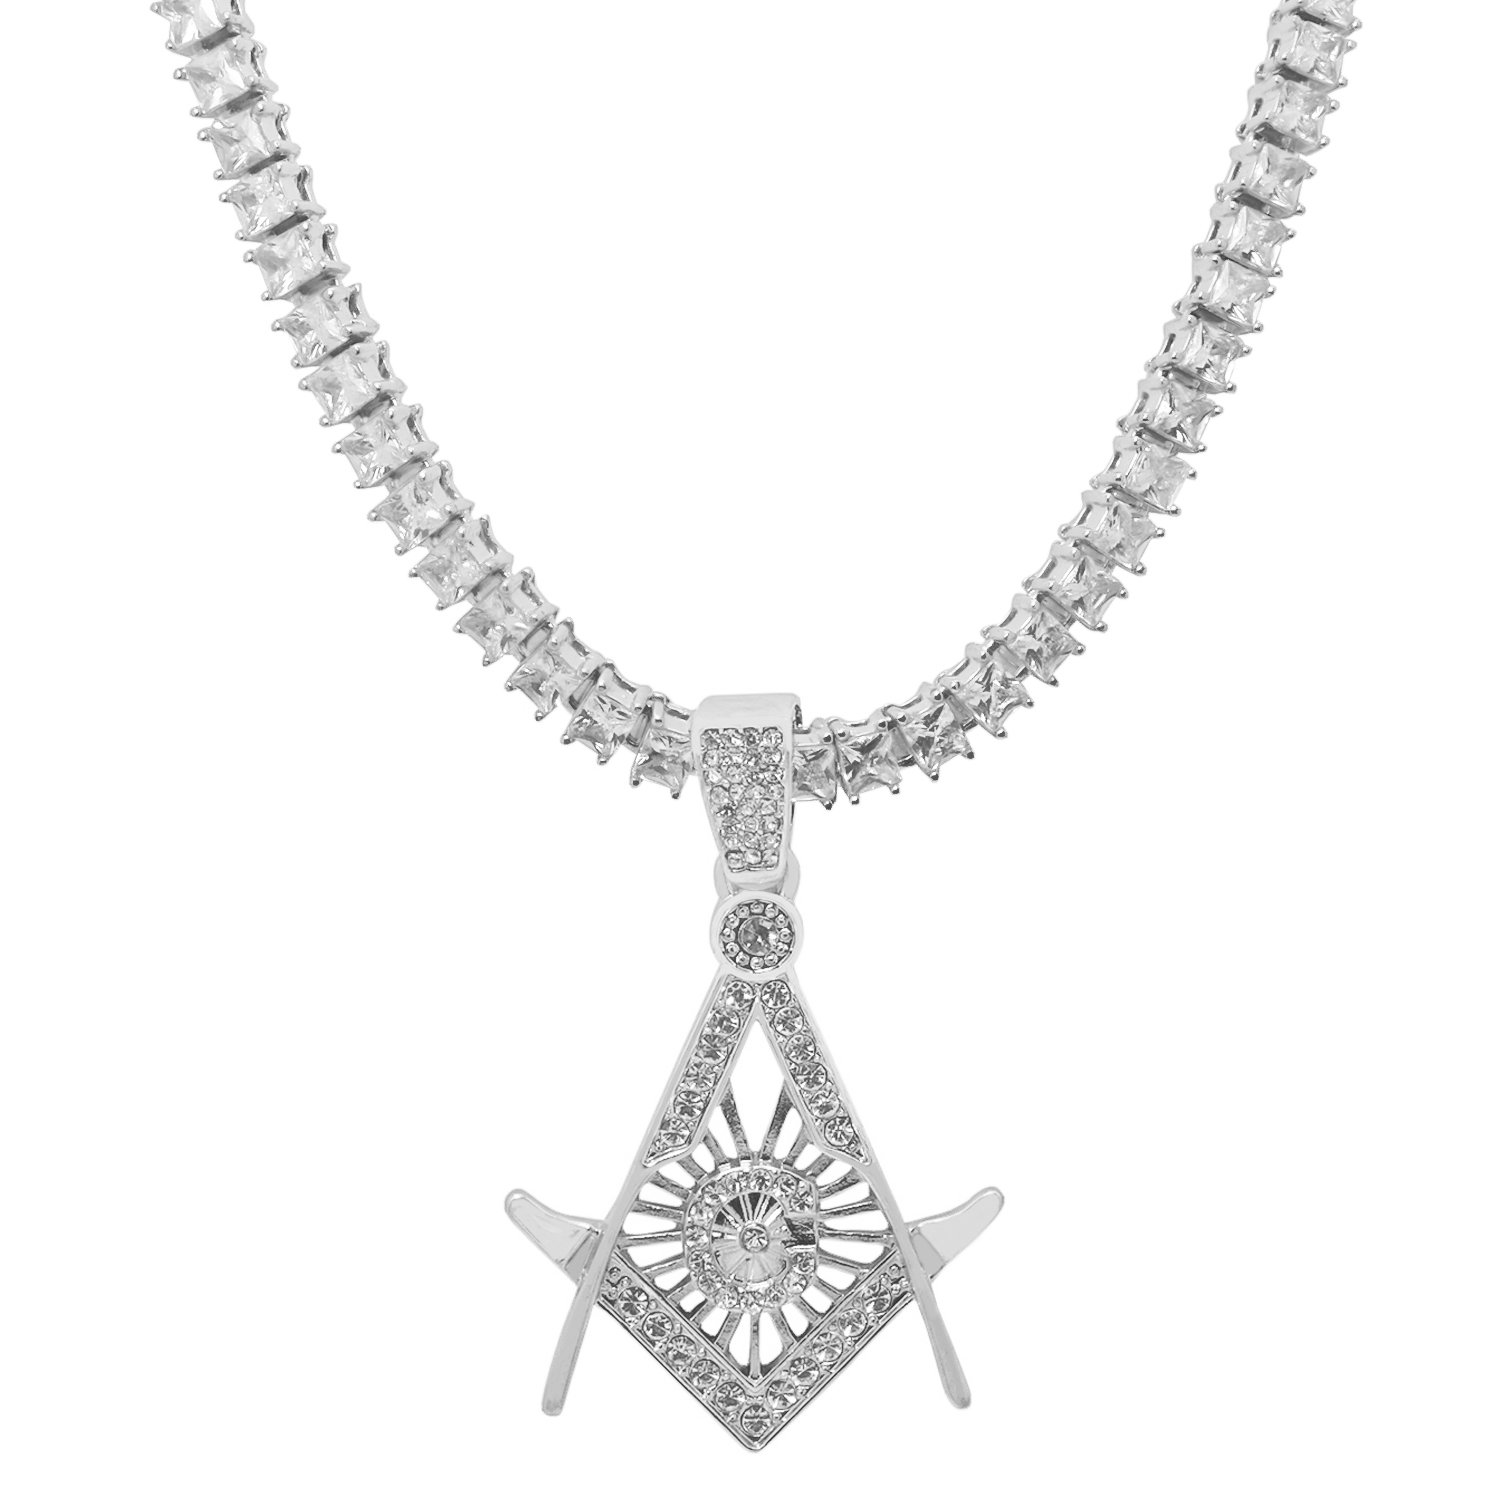 White-Tone Hip Hop Bling Freemason Compass Pendant with 1 Row Princess Cut Cubic Zirconia Stone 24 Tennis Chain